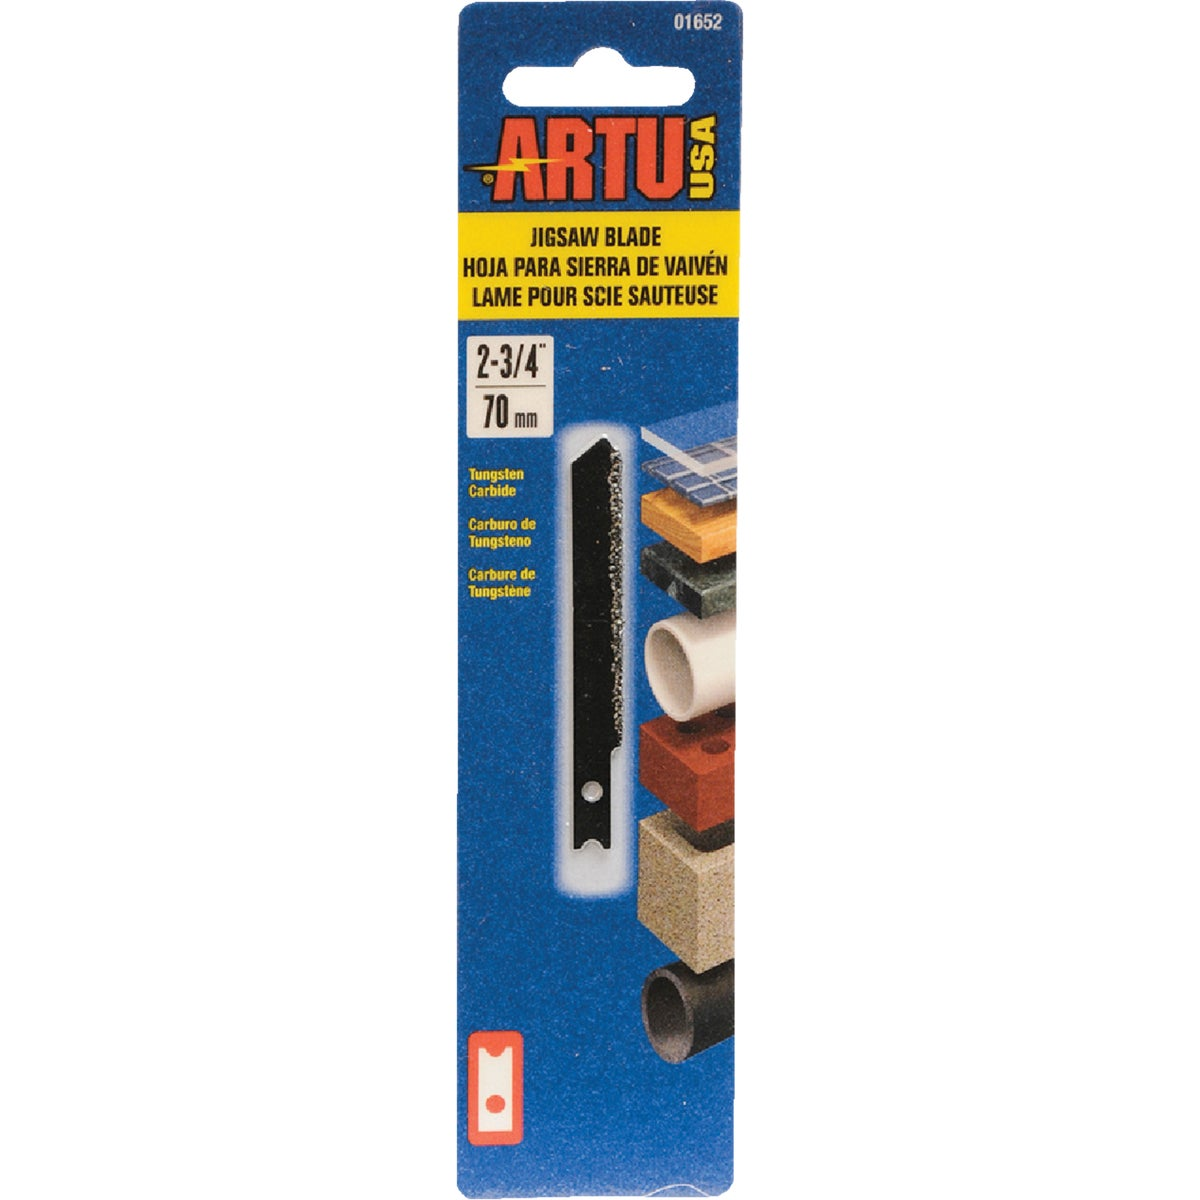 "3"" TC JIGSAW BLADE - 01652 by Artu Usa Inc"